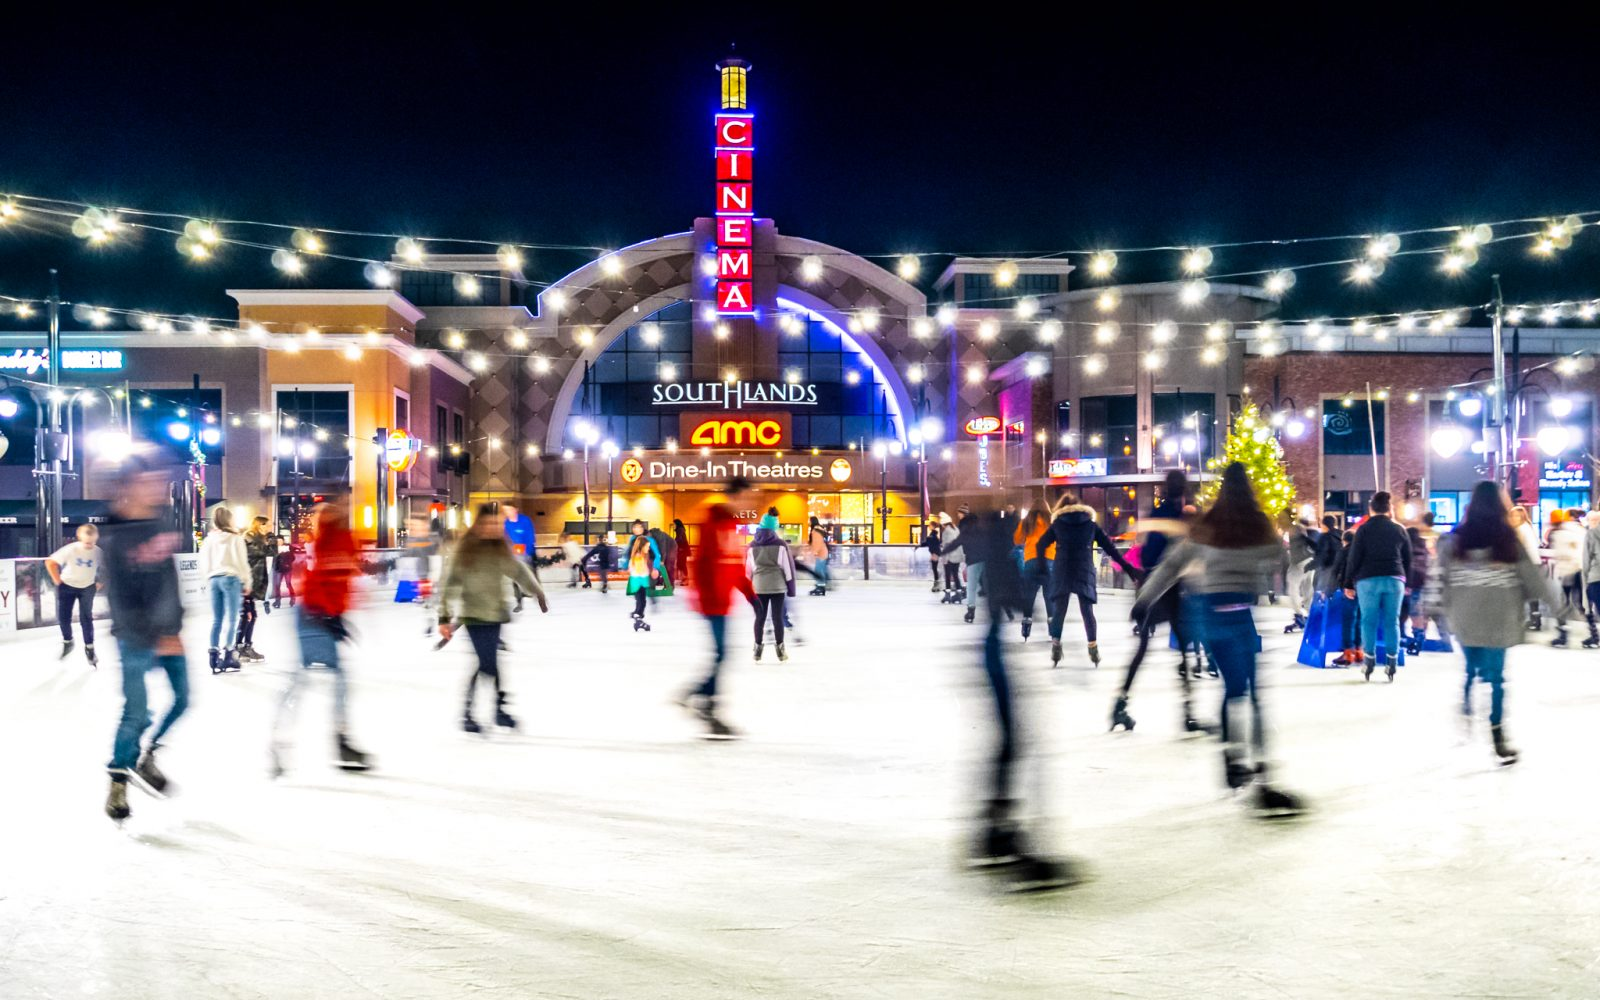 Ice Skaters on an Outdoor Rink